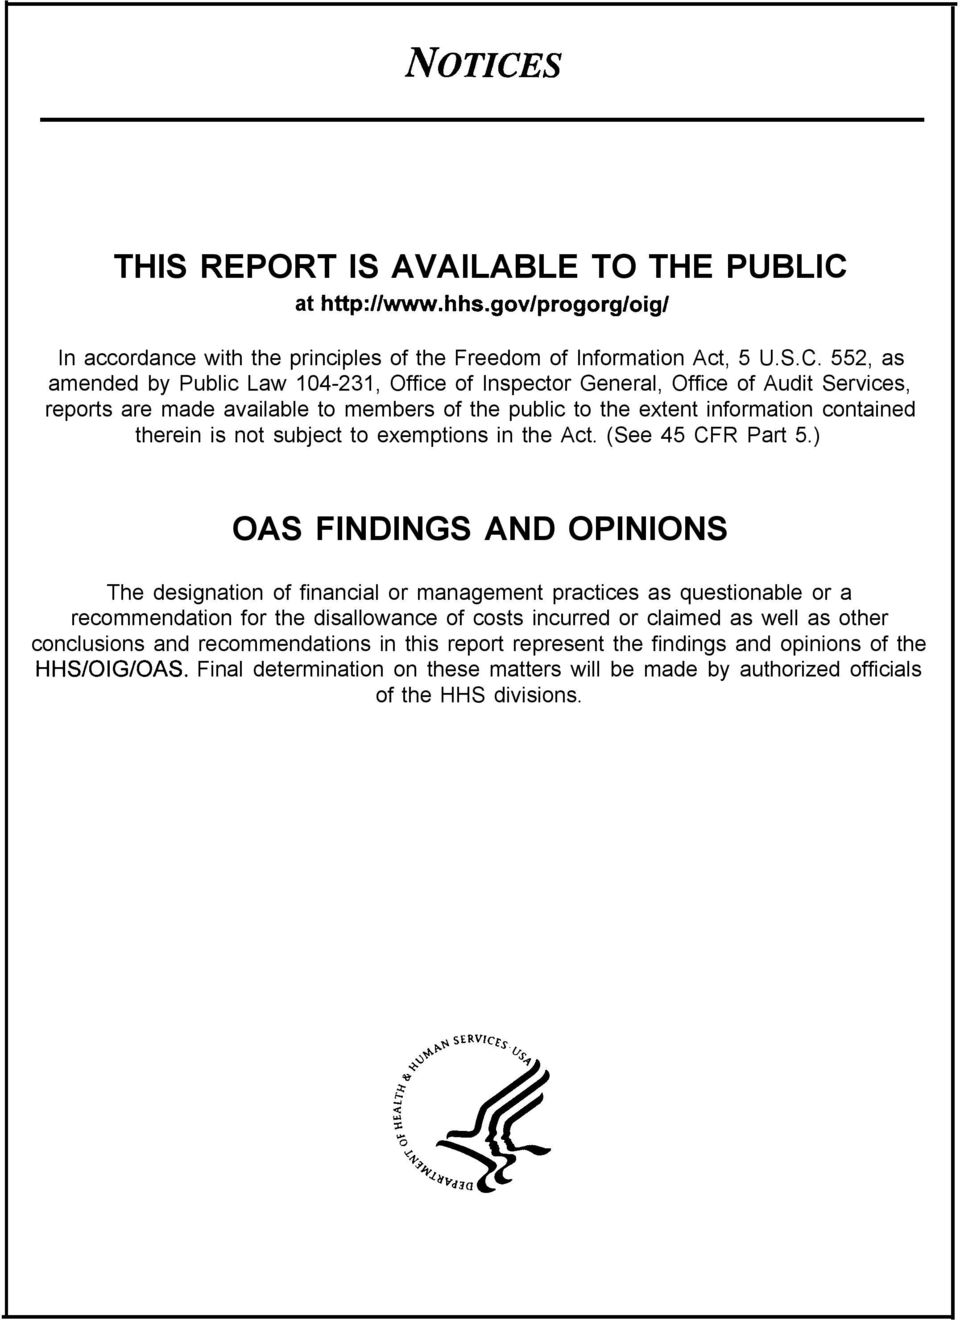 552, as amended by Public Law 104-231, Office of Inspector General, Office of Audit Services, reports are made available to members of the public to the extent information contained